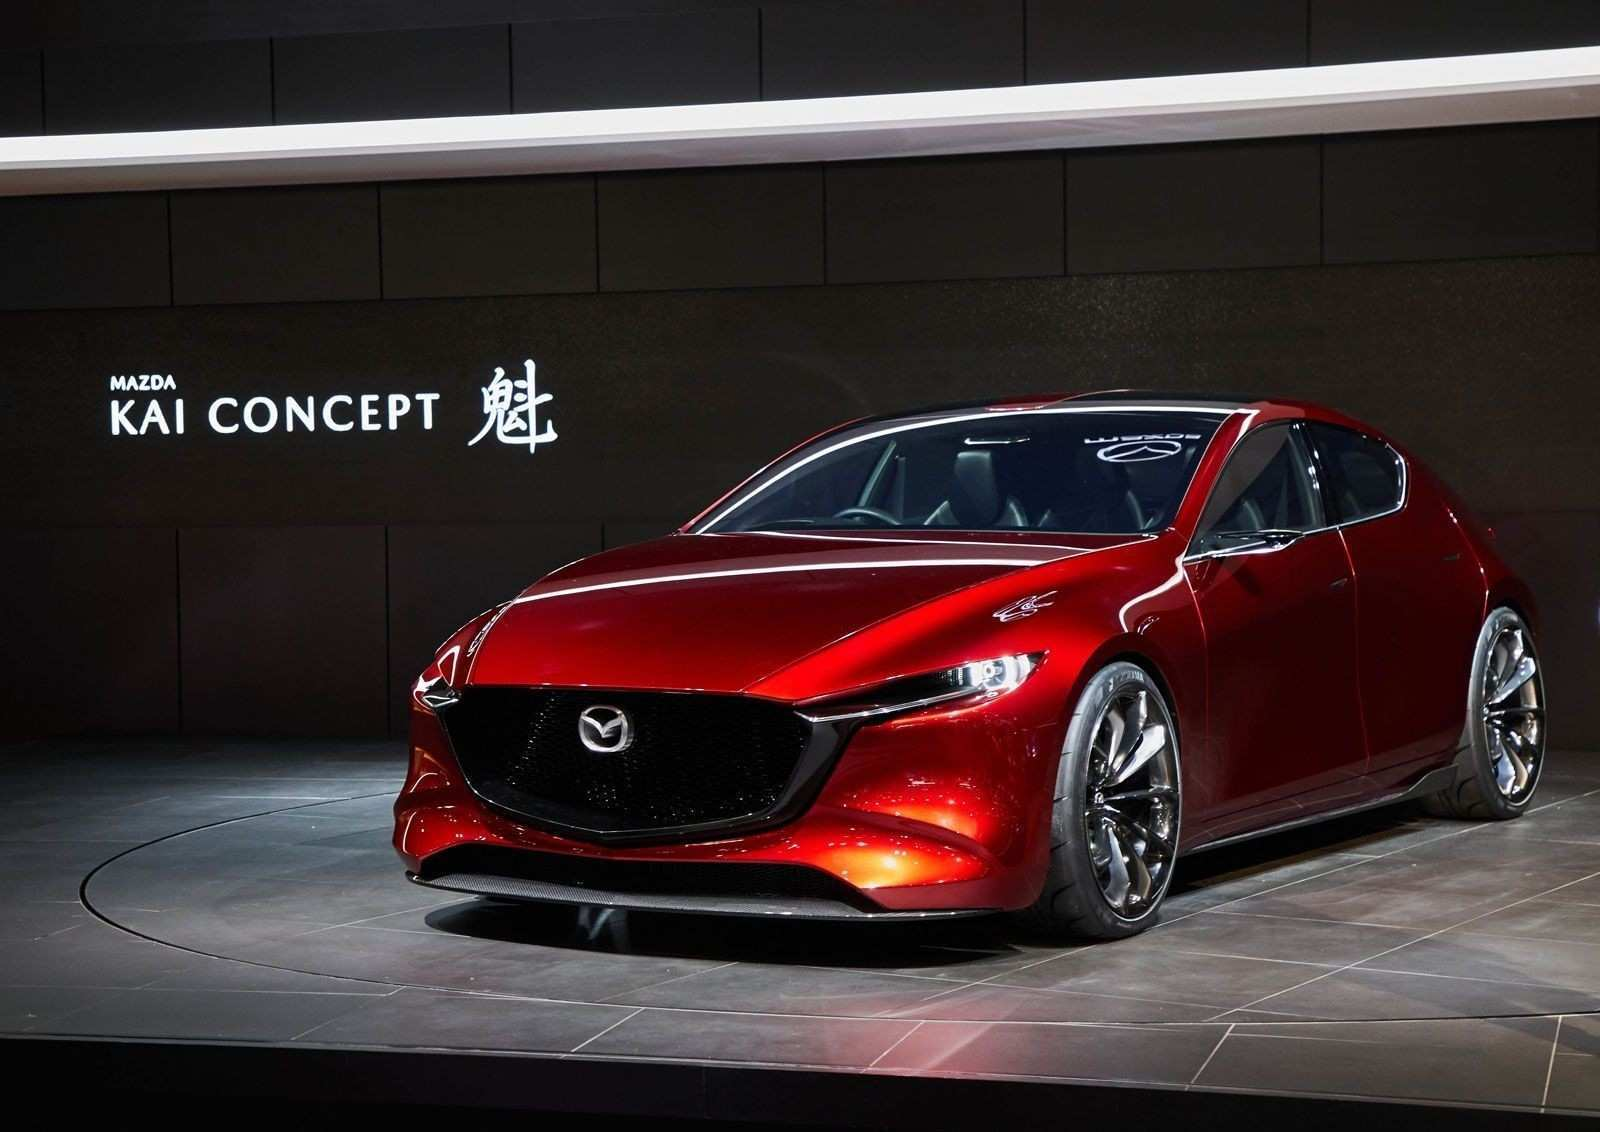 40 Best Review Mazda 2019 Lanzamiento Exterior And Interior Review Redesign for Mazda 2019 Lanzamiento Exterior And Interior Review